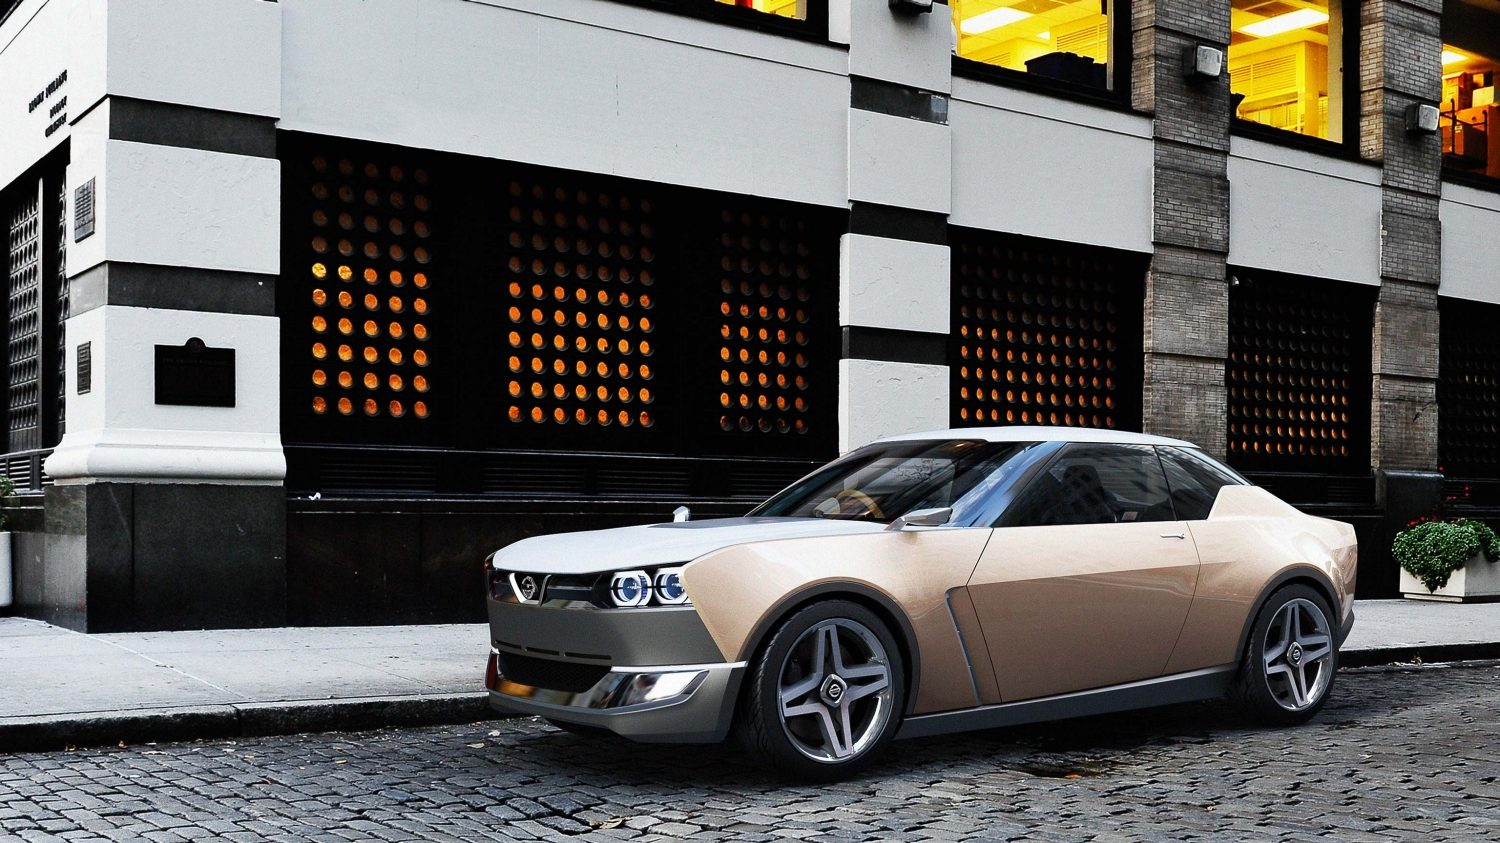 2019 Nissan IDx Freeflow Concept photo - 5